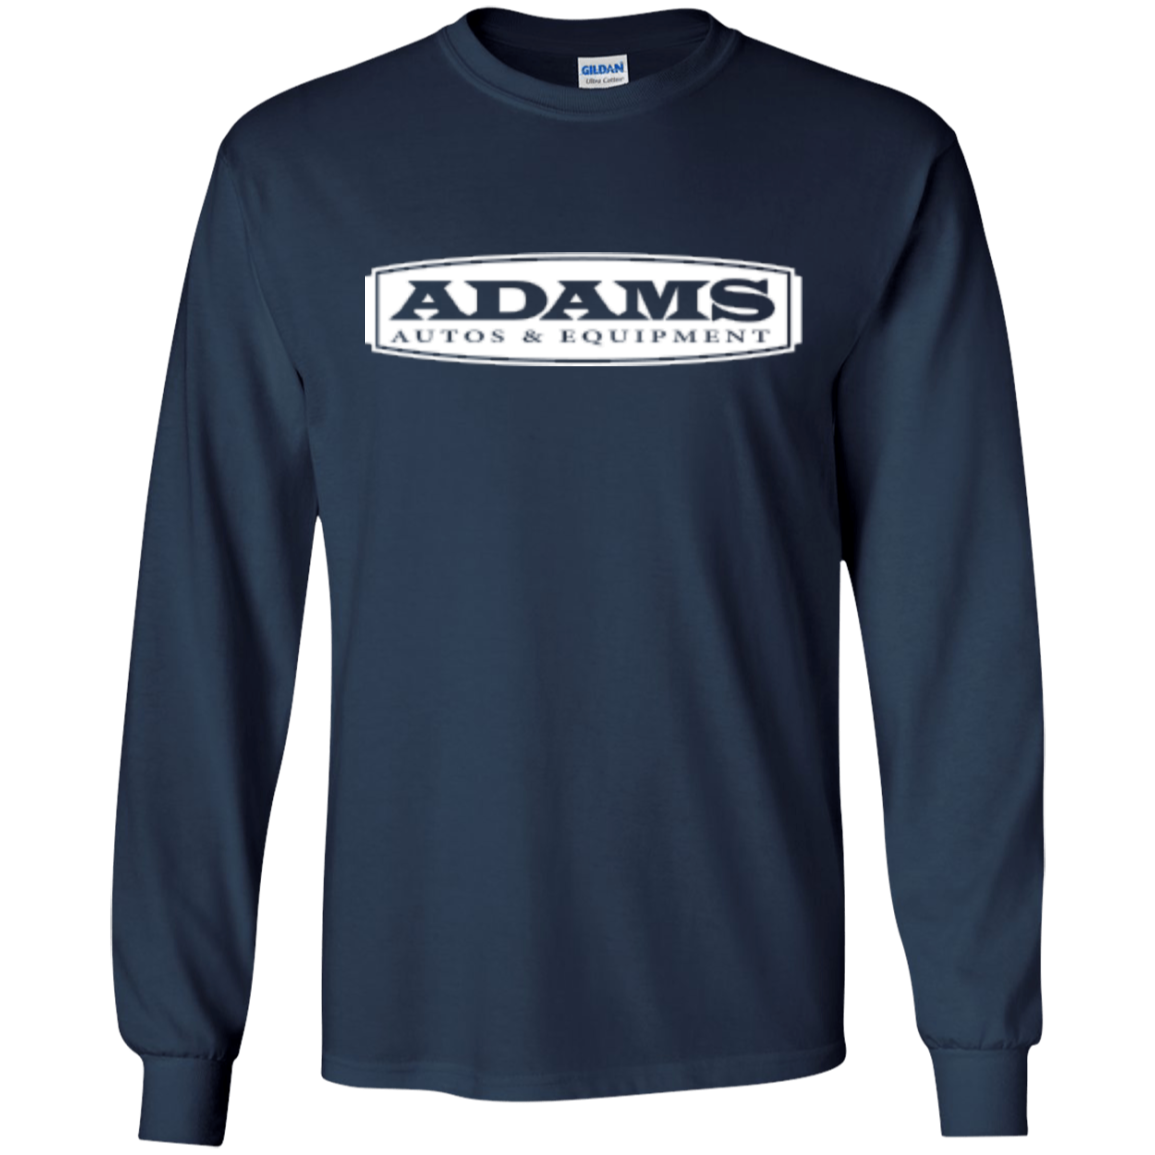 Adams Autos Ultra Cotton Long Sleeve T-Shirt